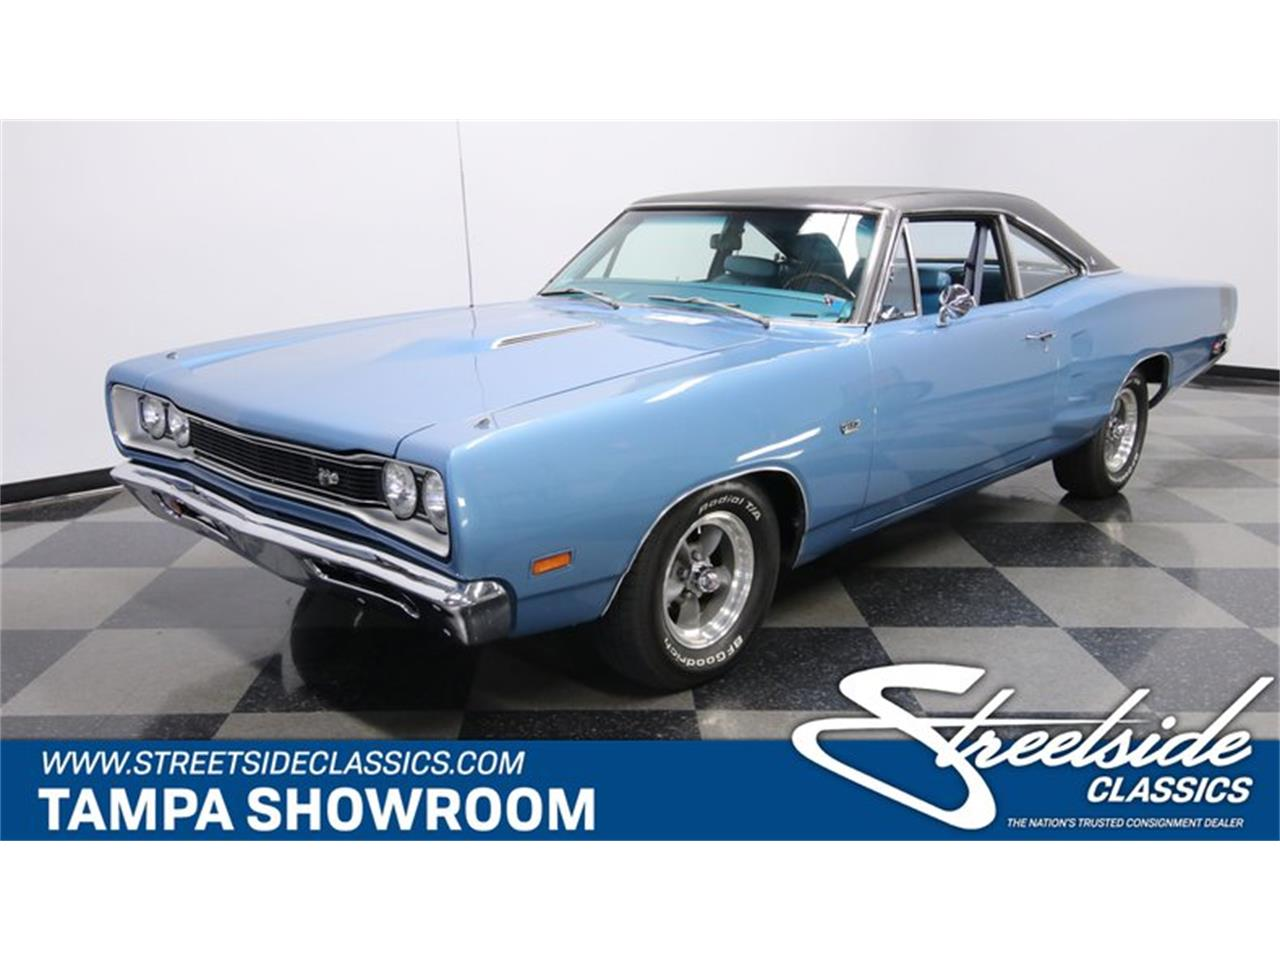 Large Picture of Classic 1969 Dodge Super Bee located in Florida - $43,995.00 Offered by Streetside Classics - Tampa - QP0O